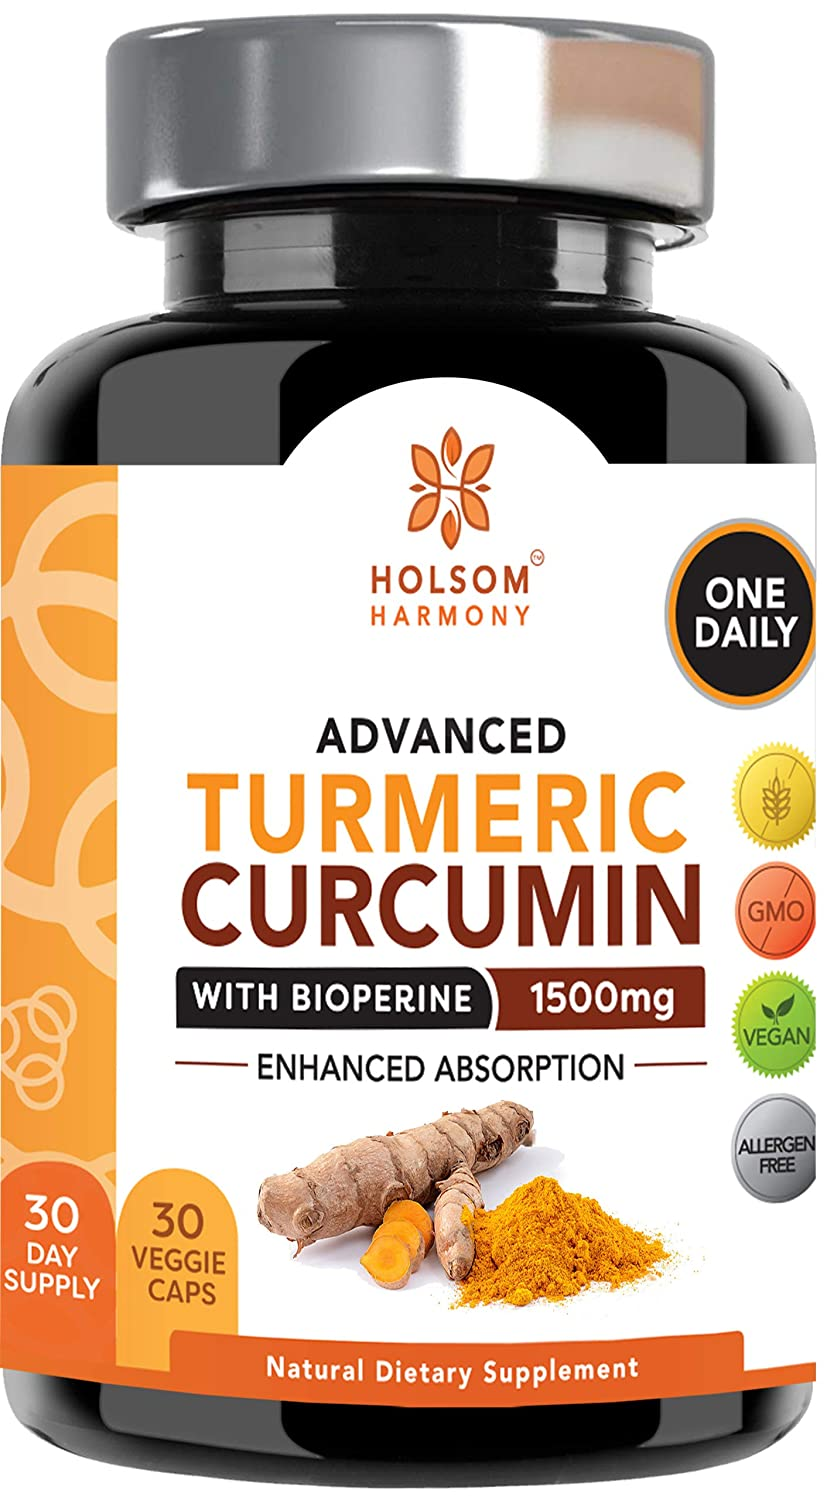 Turmeric Curcumin with Bioperine 1650mg Advanced Formula ONE DAILY, Joint Pain Relief Anti Inflammatory Supplement with Black Pepper for Best Absorption. Non-GMO, Natural, Made in USA,180 pills